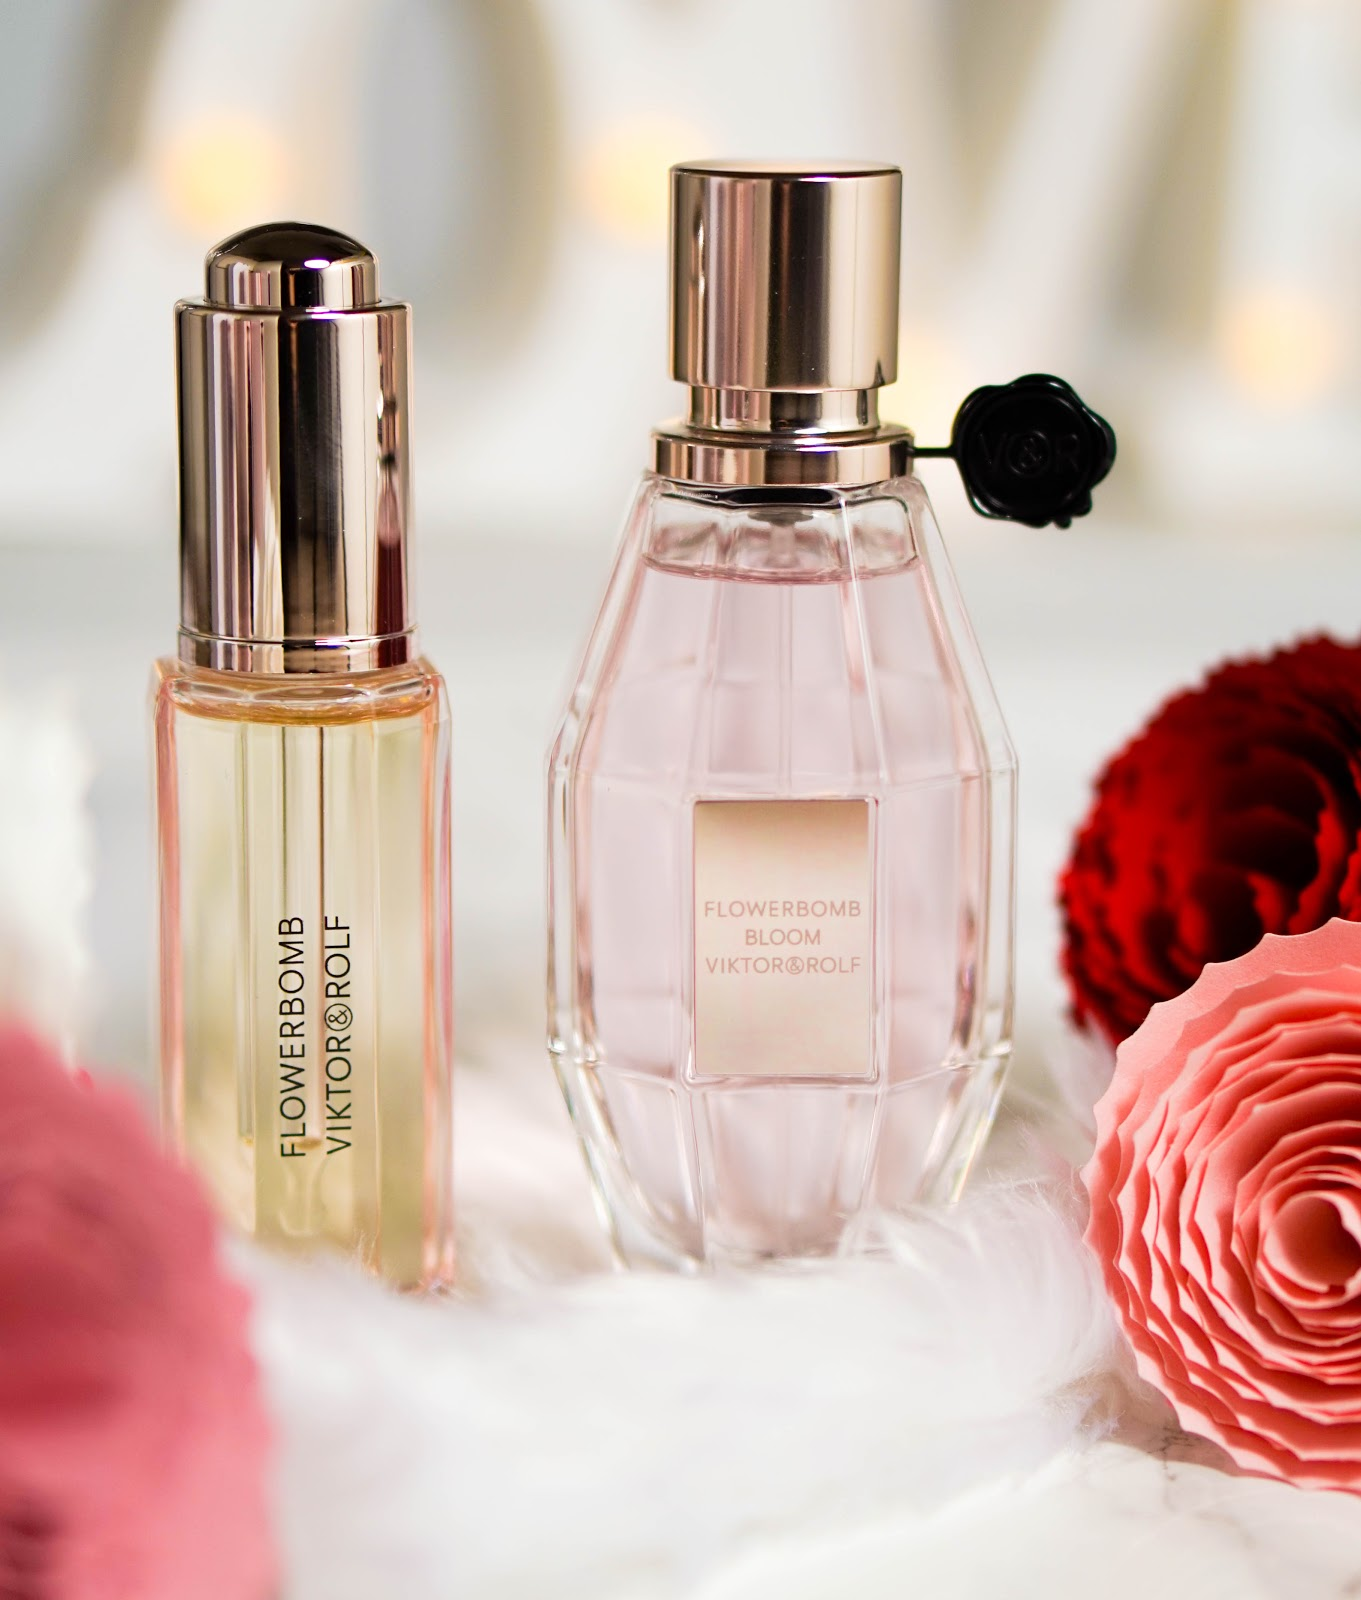 New Viktor & Rolf Flowerbomb Bloom